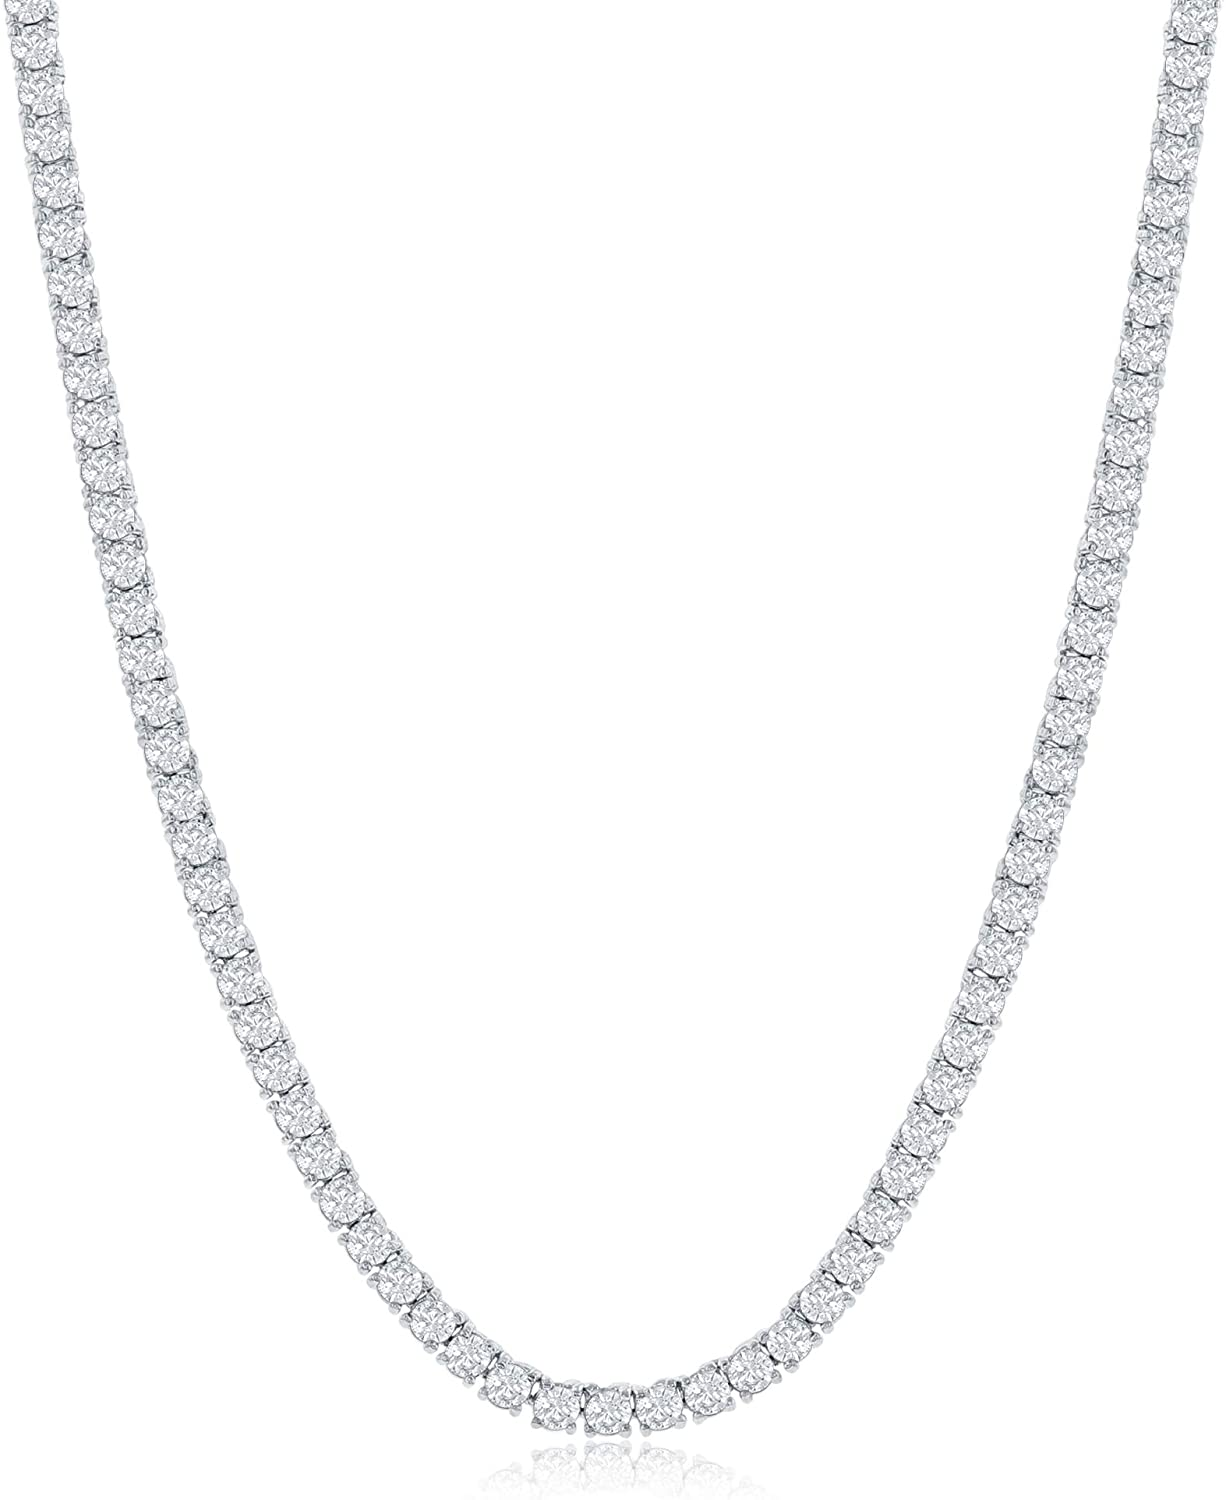 NYC Sterling Women's Magnificent 3mm Round Cubic Zirconia Tennis Necklace